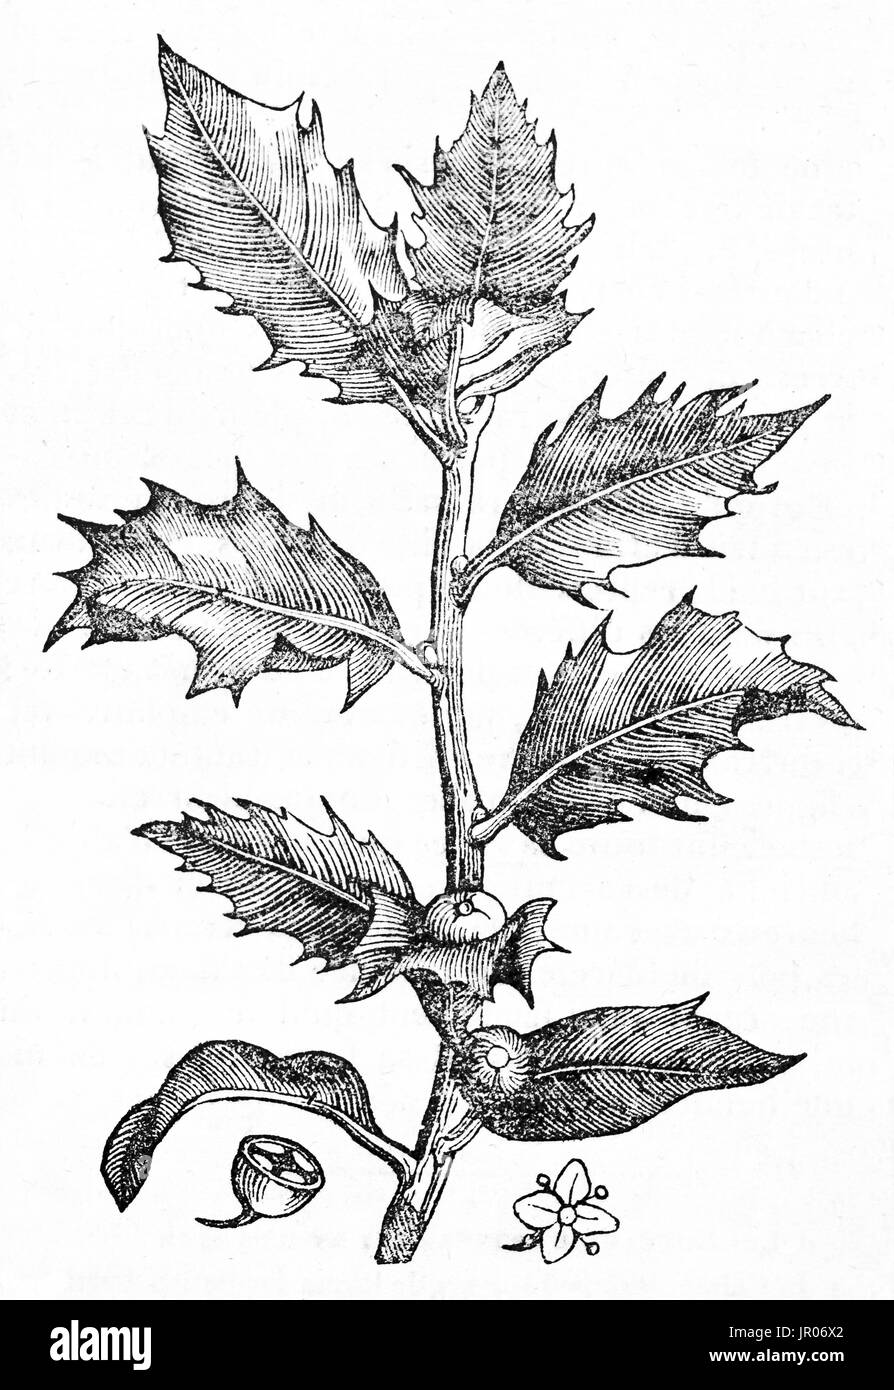 Old illustration of Holly (Ilex aquifolium). By unidentified author, published on Magasin Pittoresque, Paris, 1833. - Stock Image